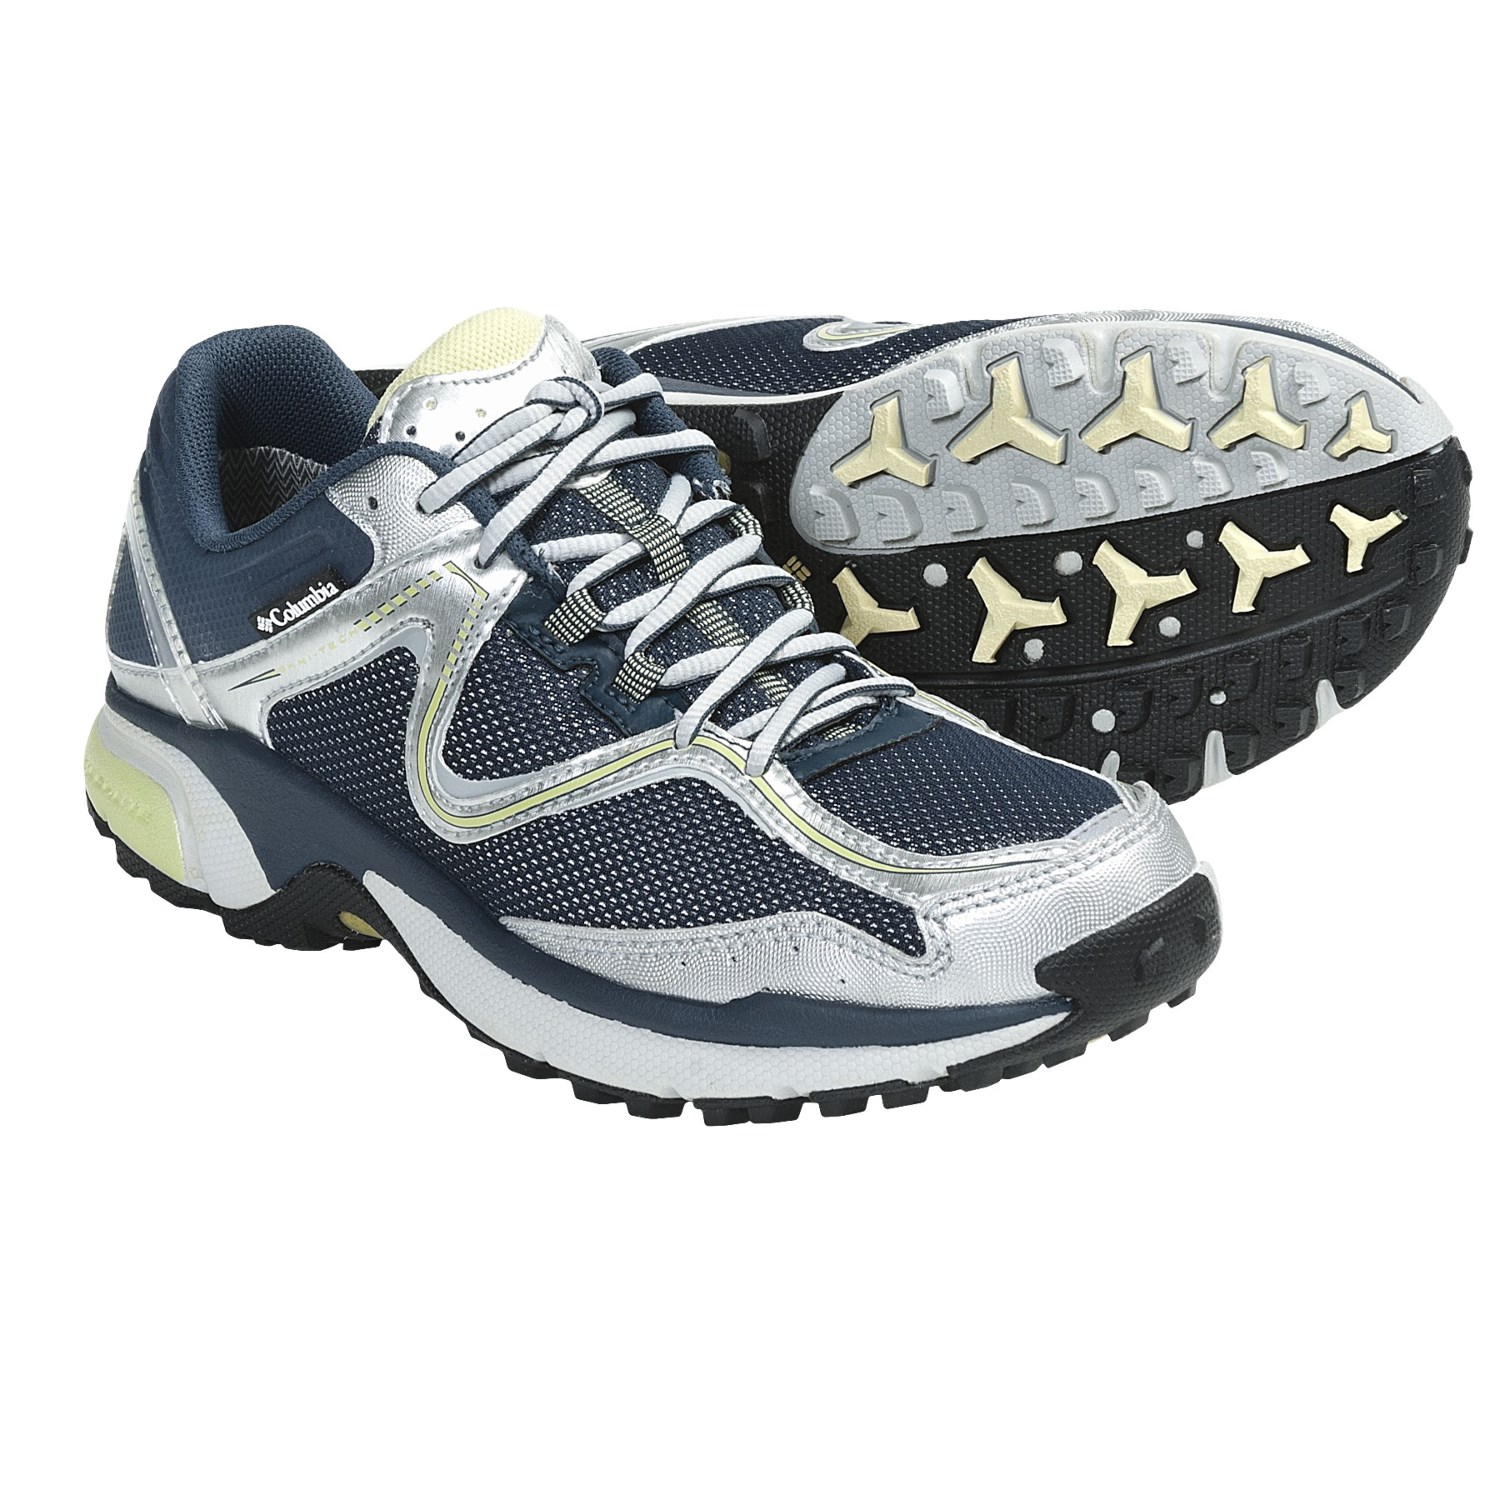 Columbia Trail Running Shoes for Women